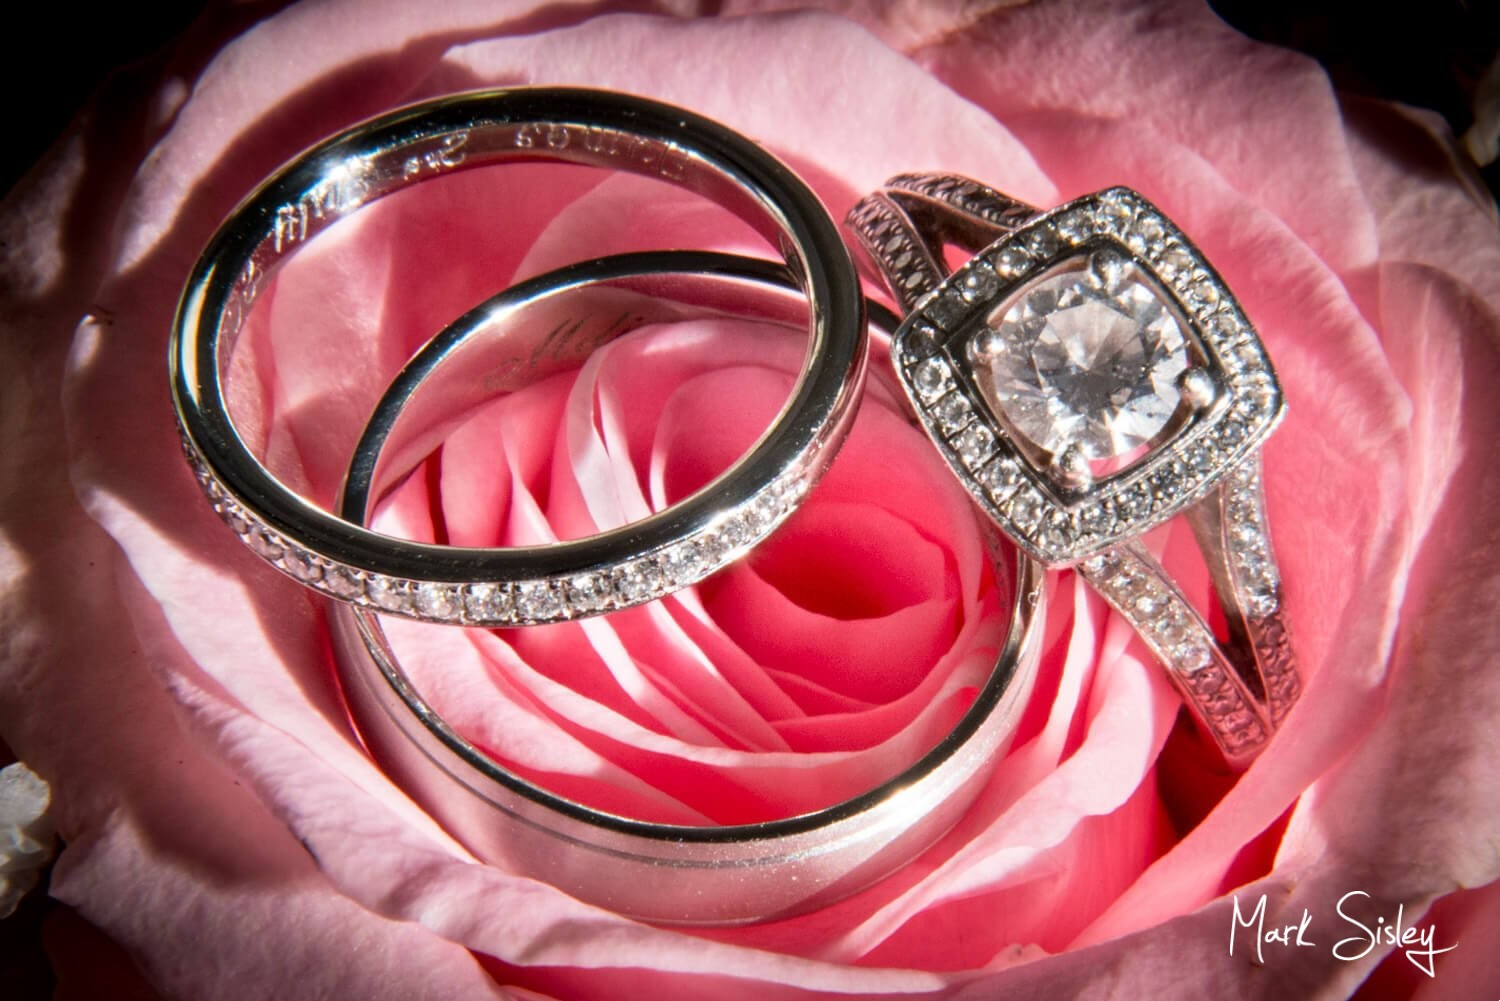 Choosing a wedding photographer - rings on rose